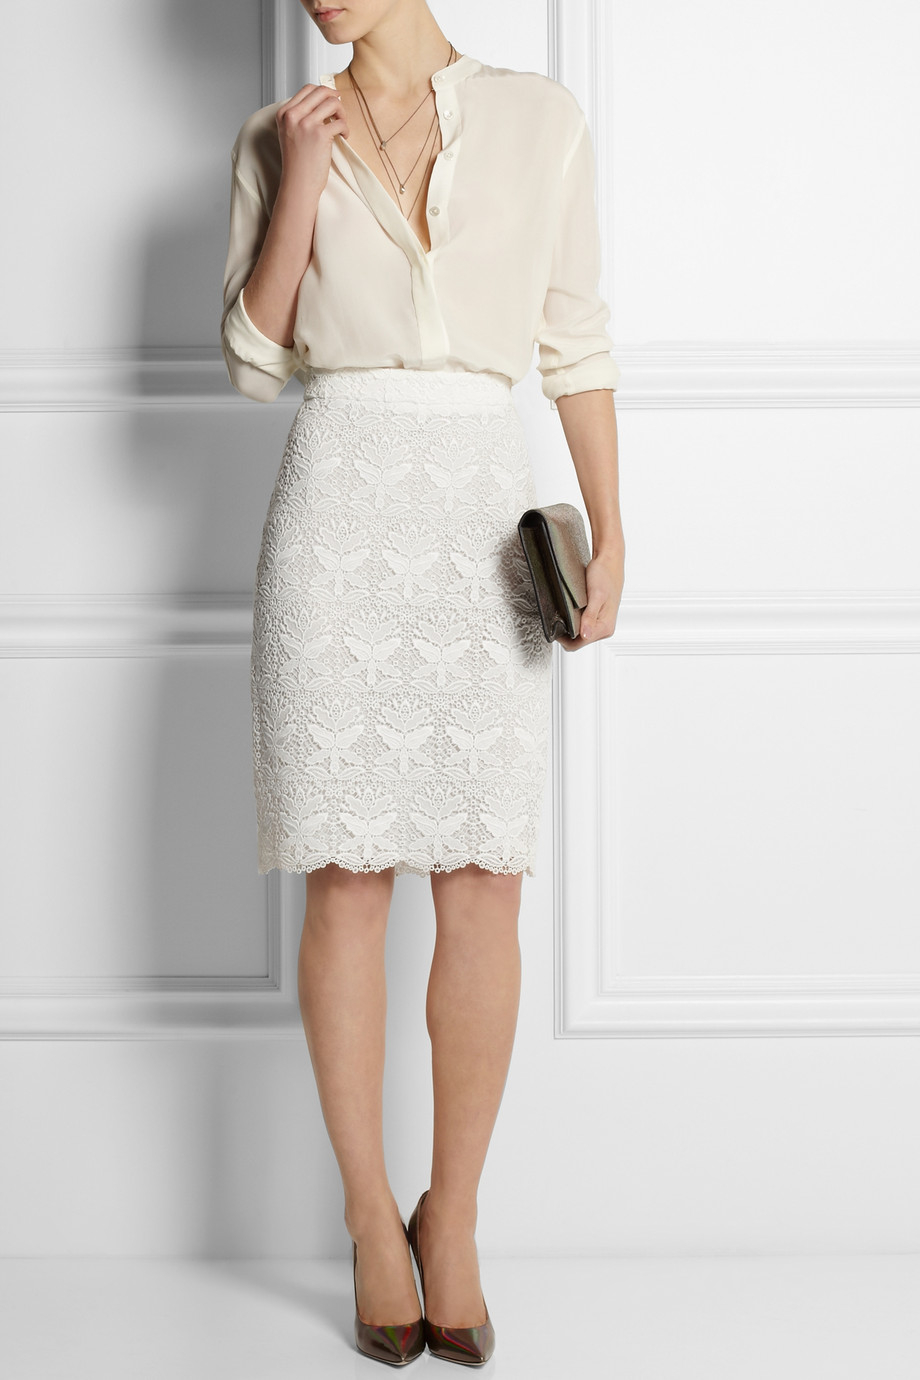 Emilio pucci Macramé Lace Pencil Skirt in White | Lyst